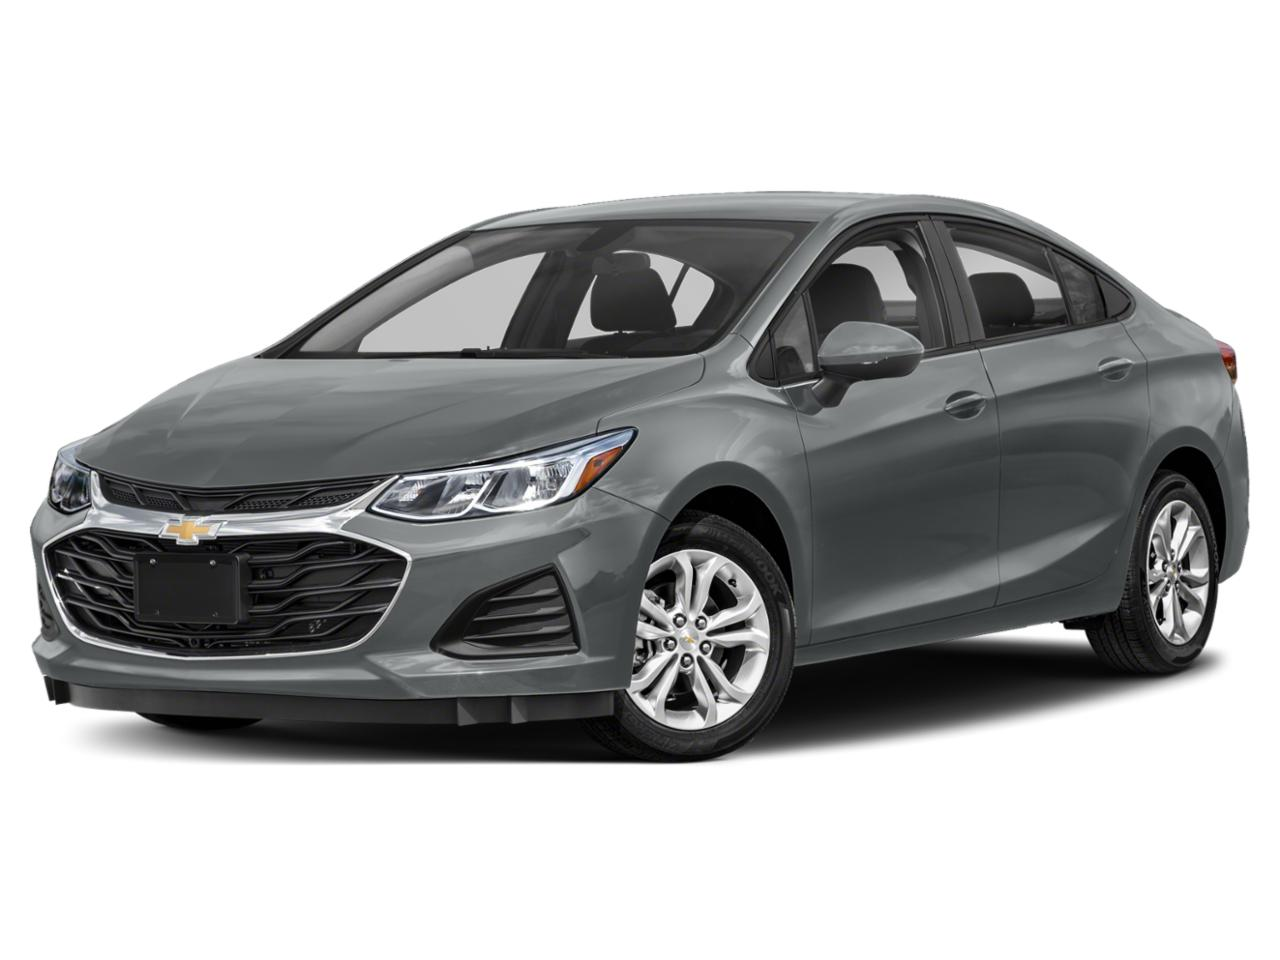 2019 Chevrolet Cruze Vehicle Photo in Novato, CA 94945